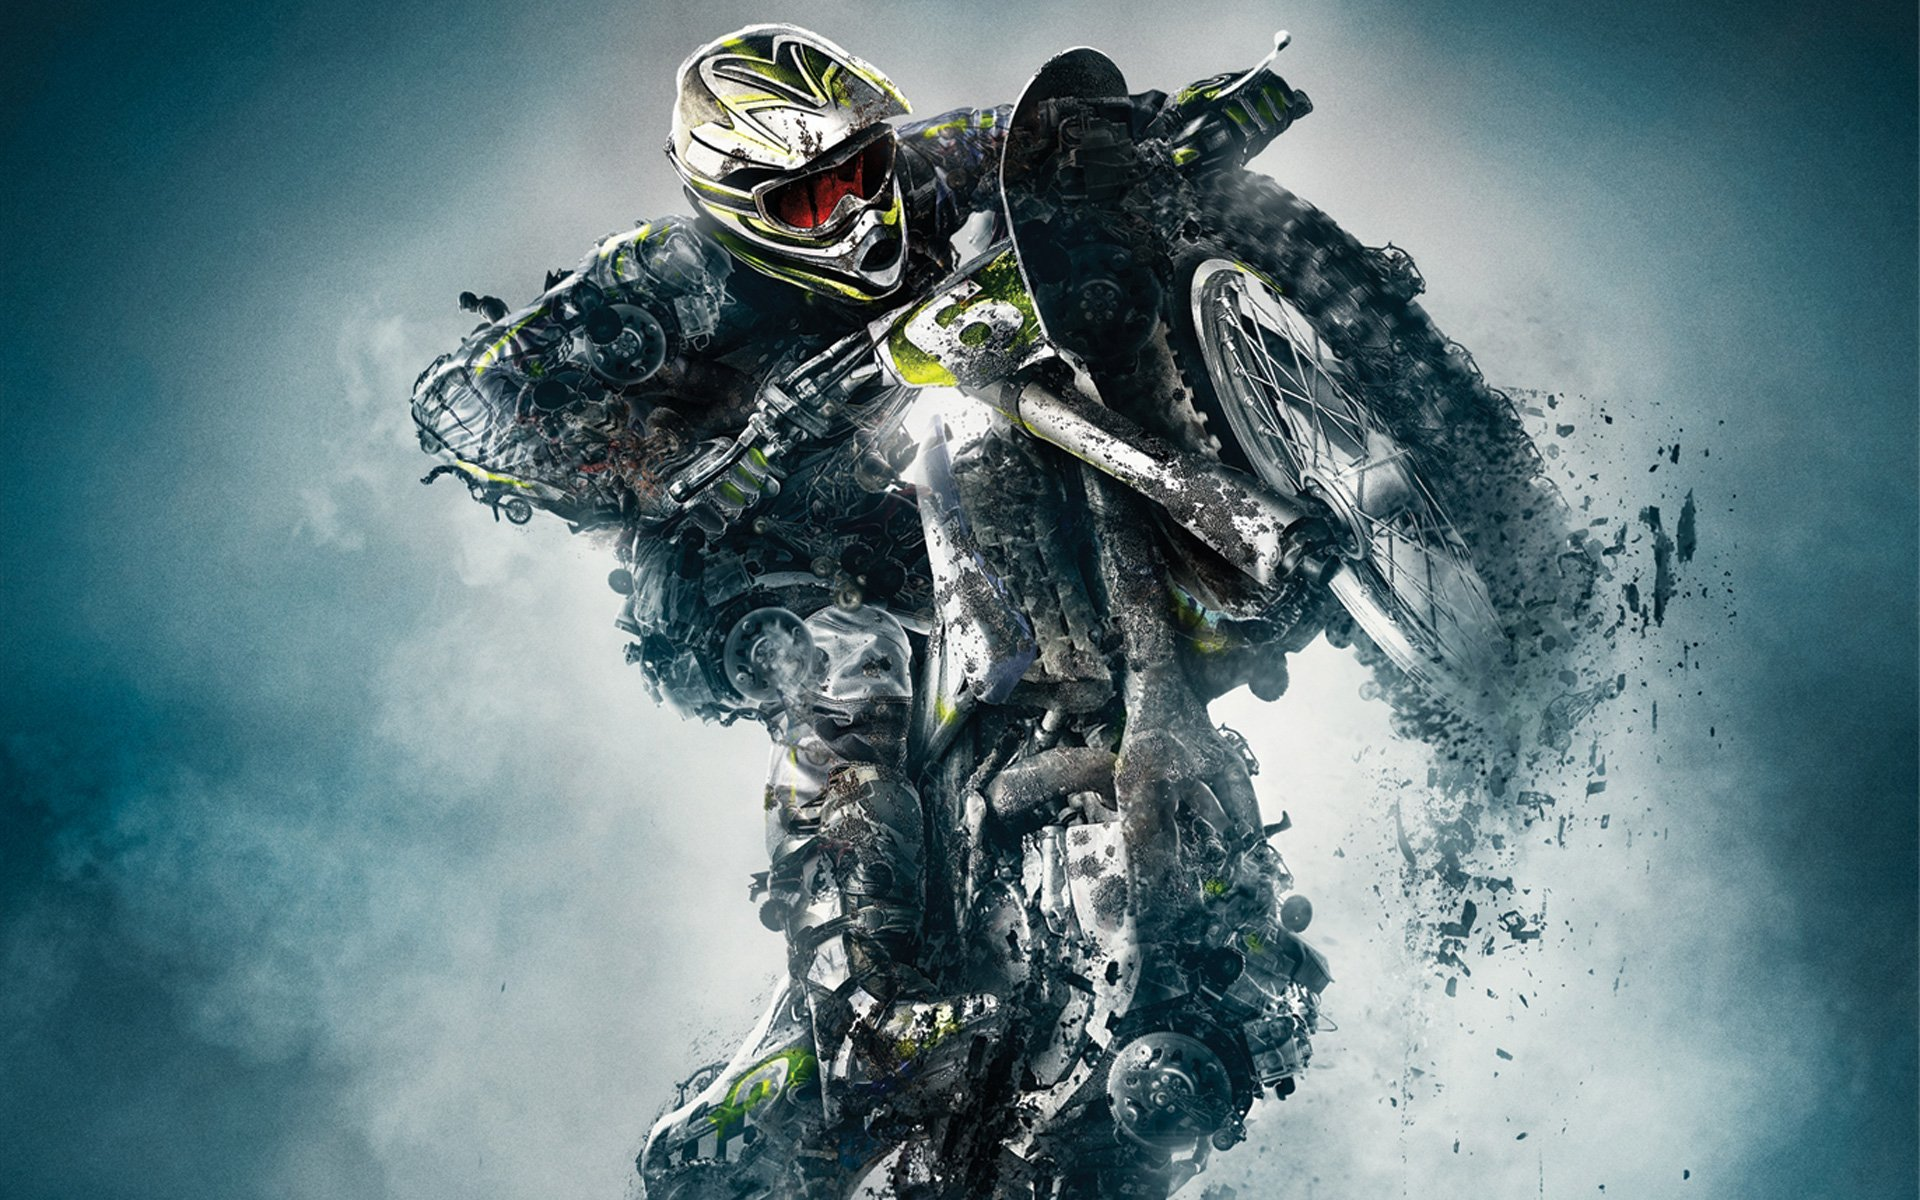 1 Mx Vs Atv Reflex Hd Wallpapers Background Images Wallpaper Abyss